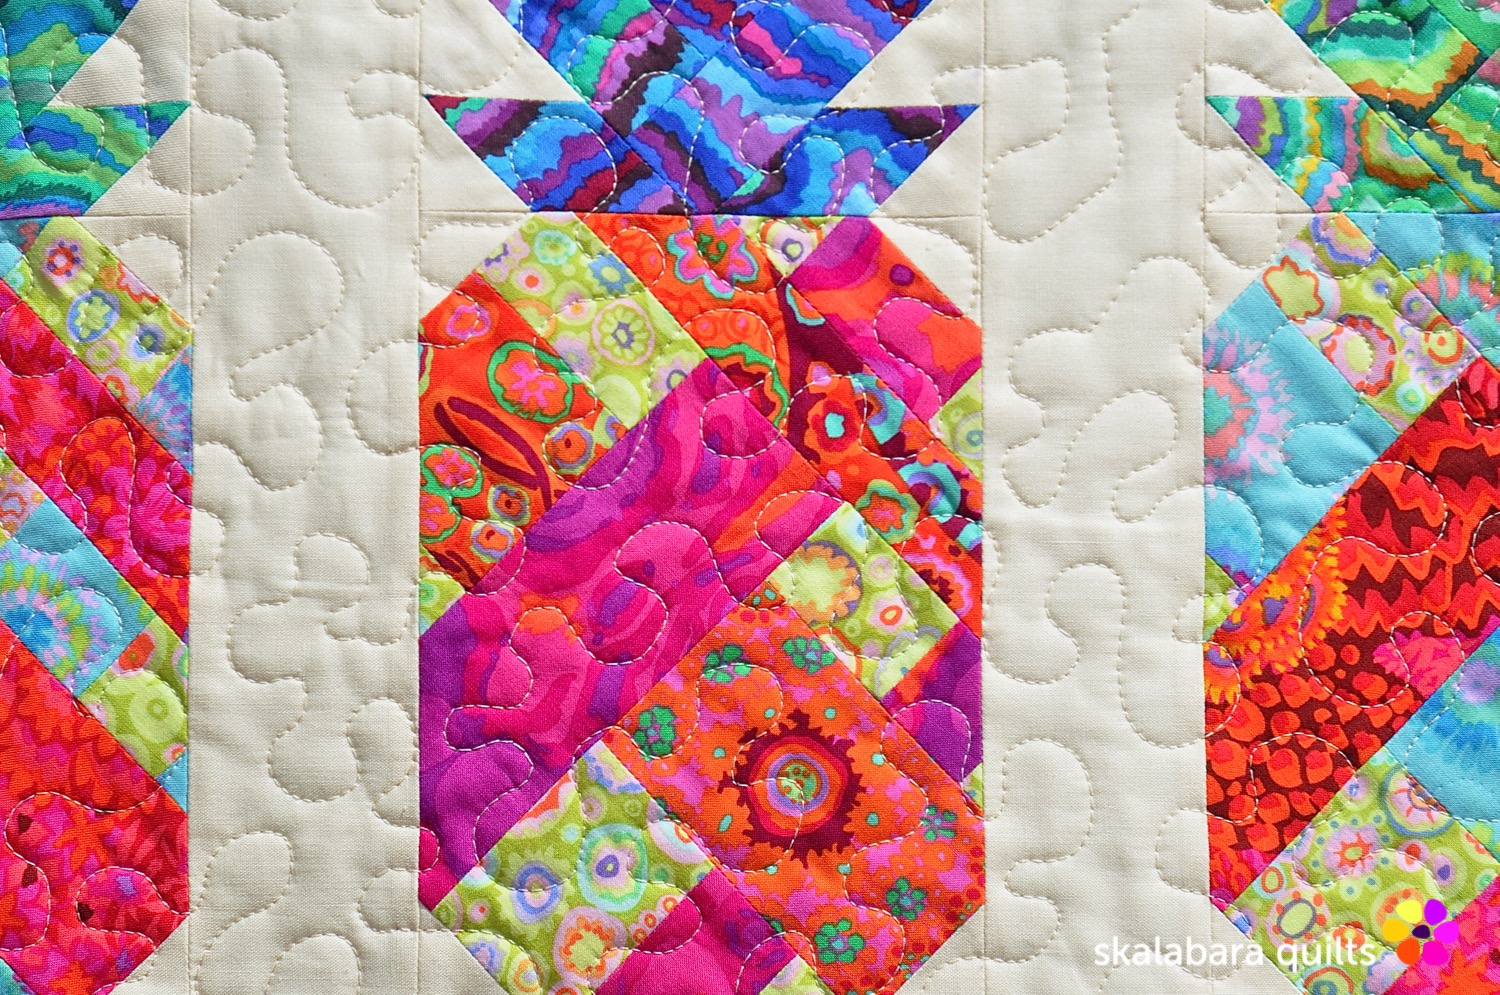 pineapple wall hanging detail 3 - skalabara quilts